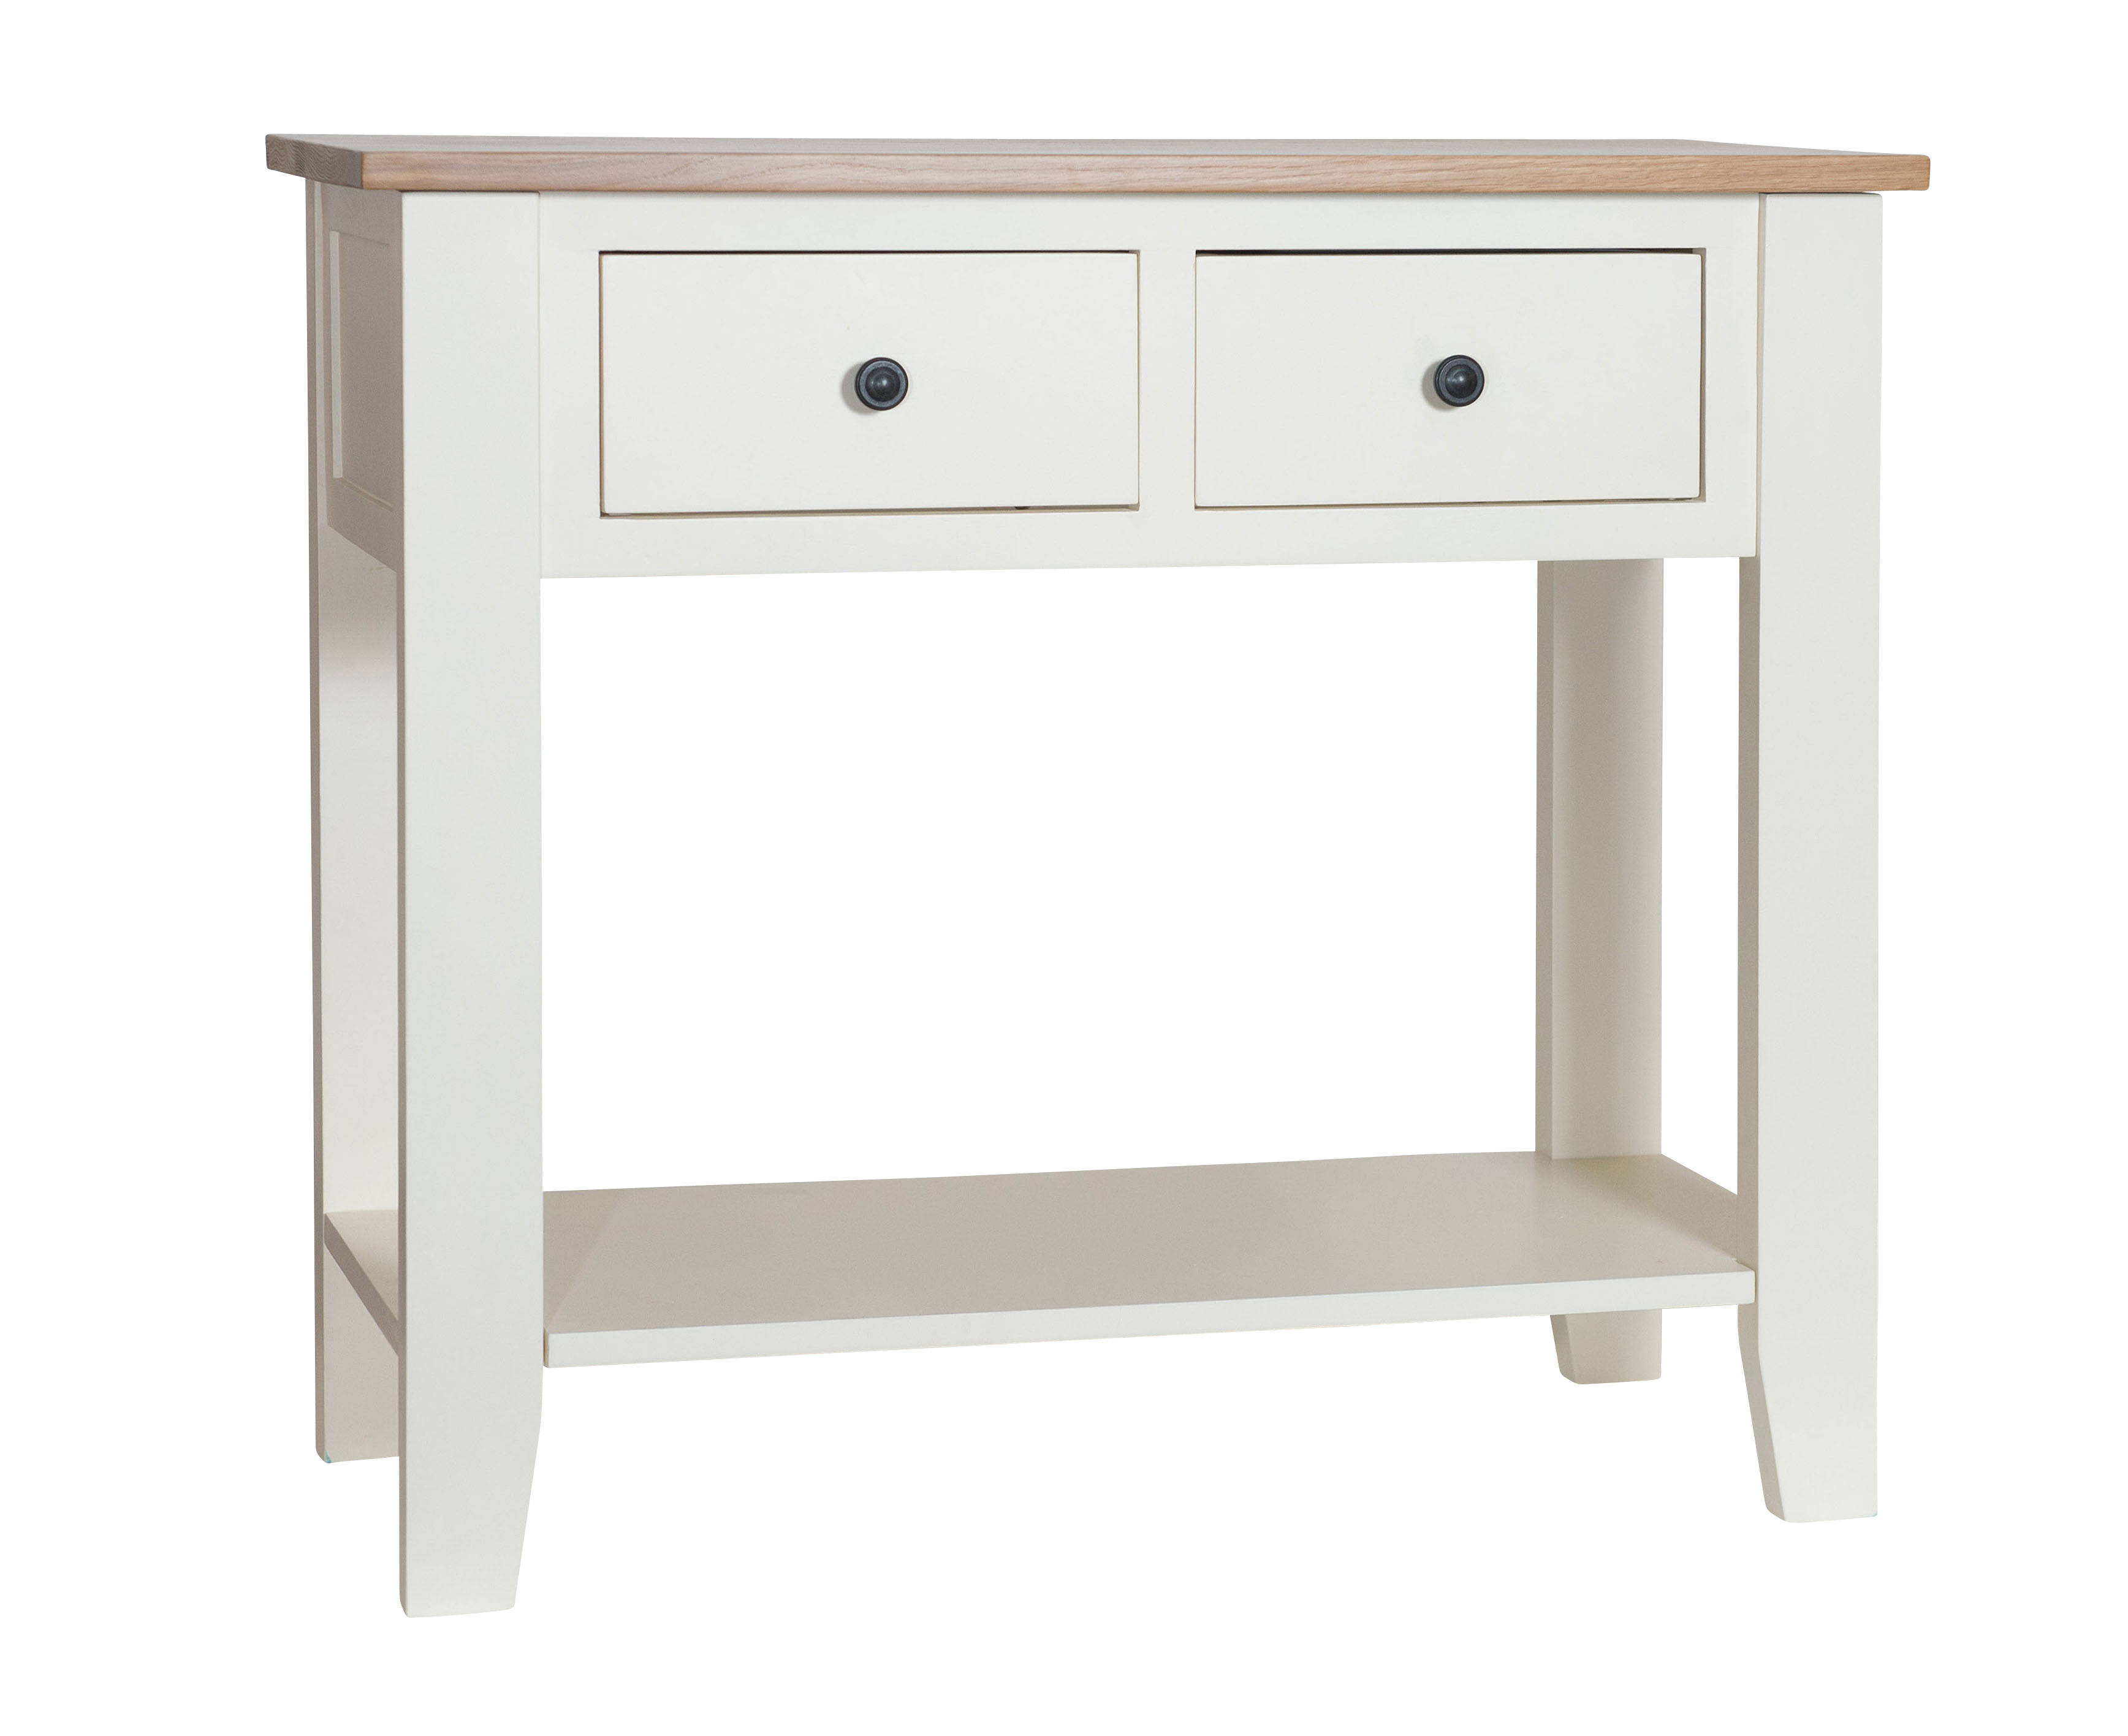 cream console table. Cream-painted-console-table-cp-ht850 Cream Console Table R